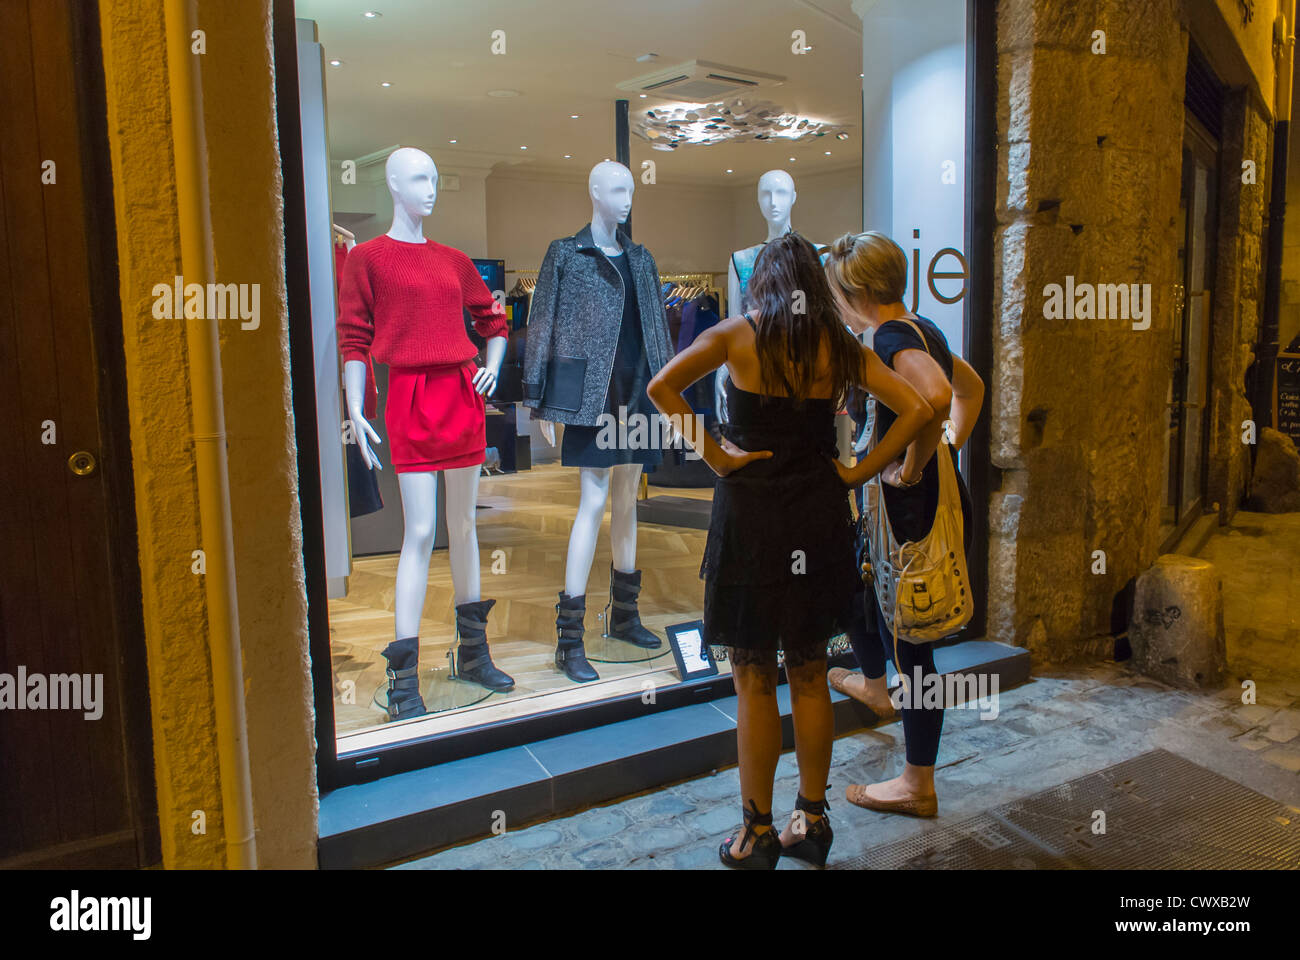 perpignan france women window shopping fashion stores in center